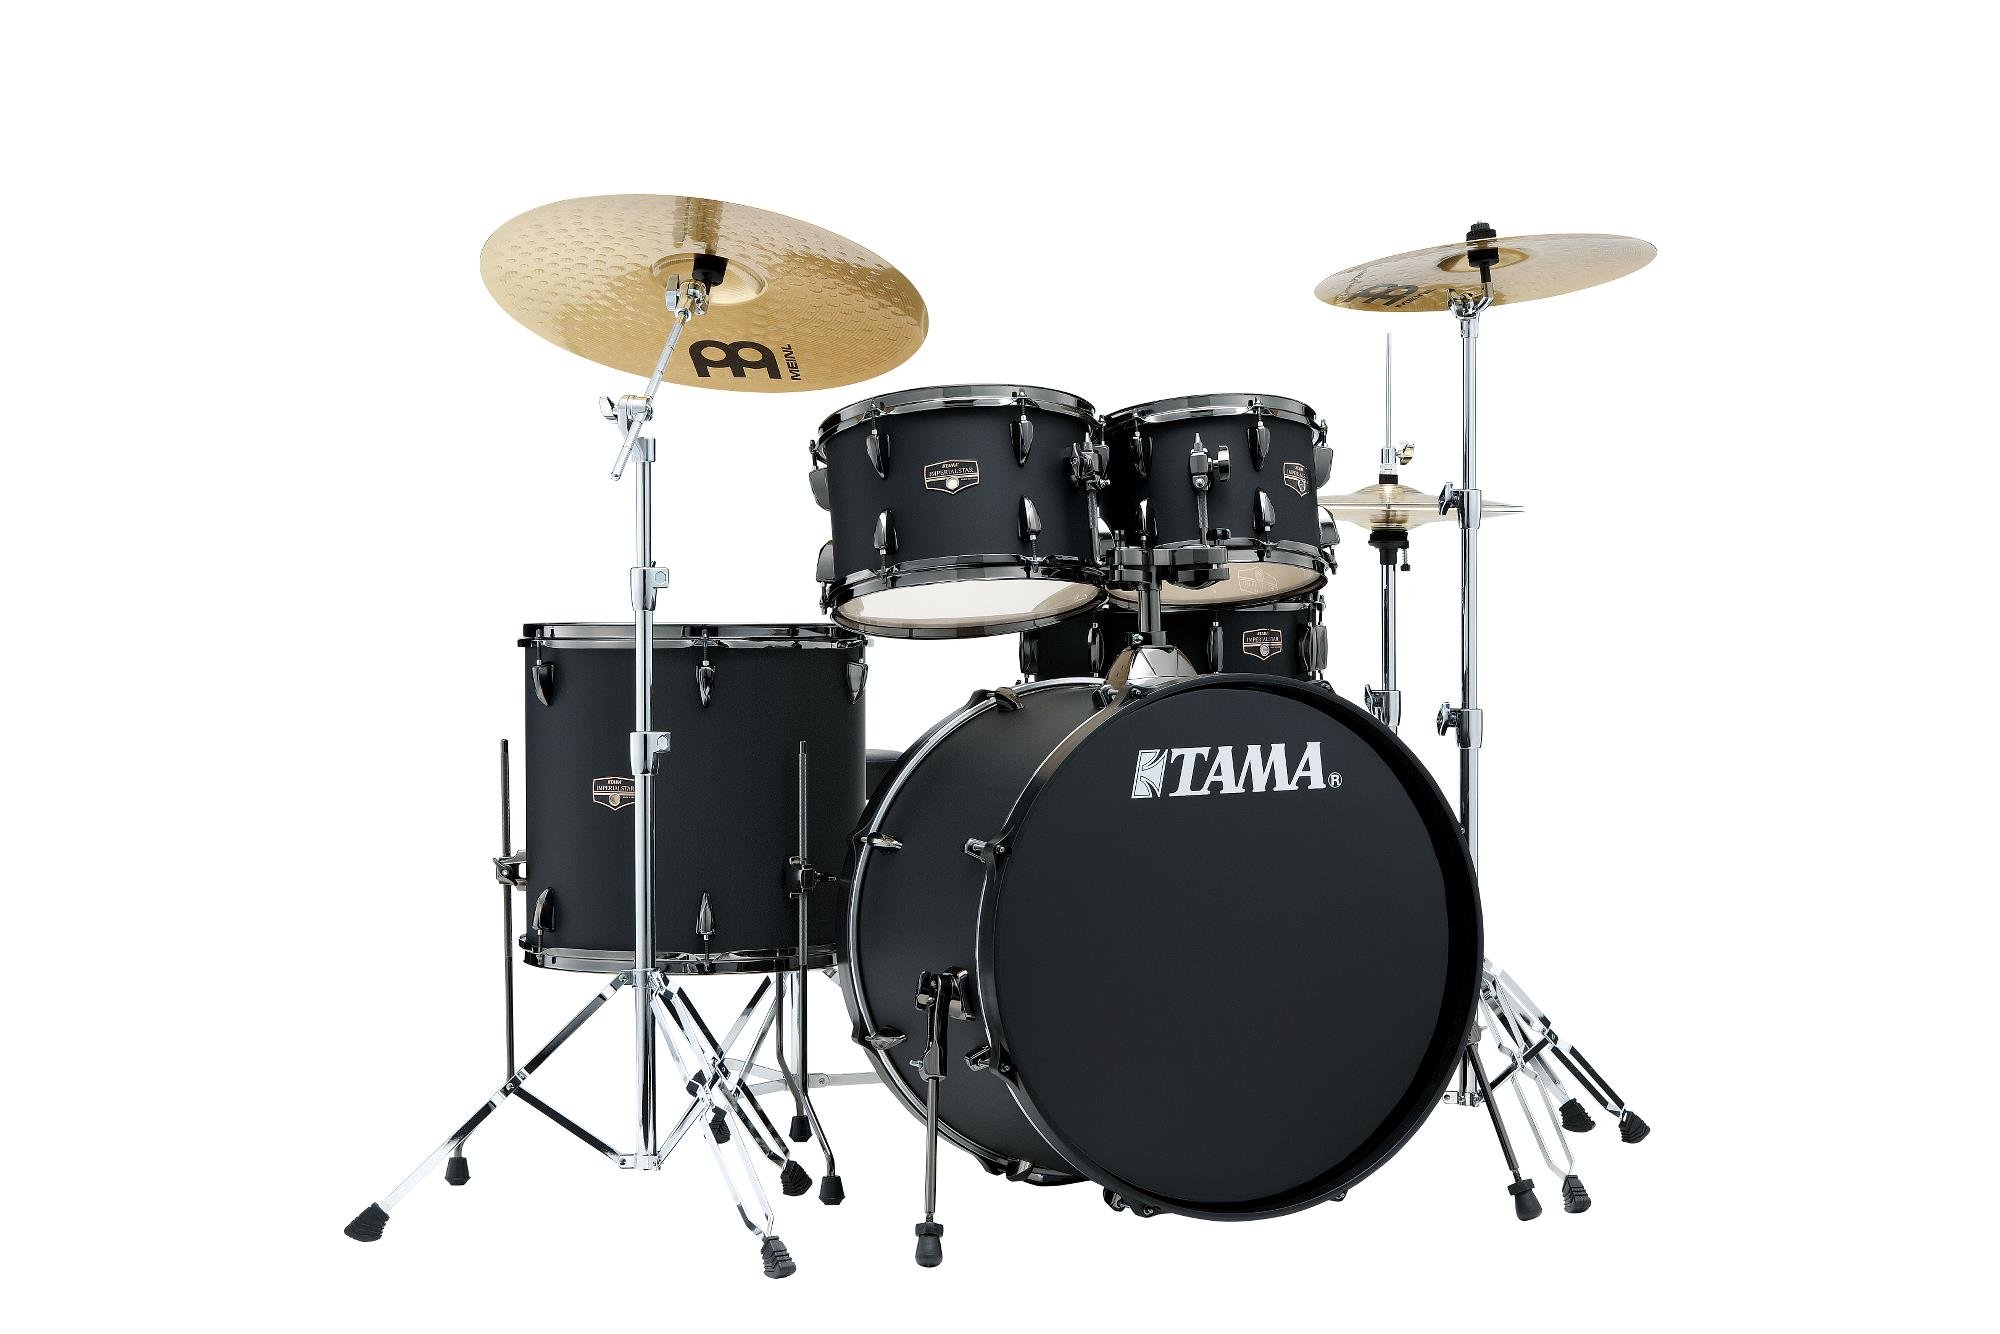 TAMA IE52CBBOB Imperialstar 5-Piece Complete Drum Kit- Blacked Out Black